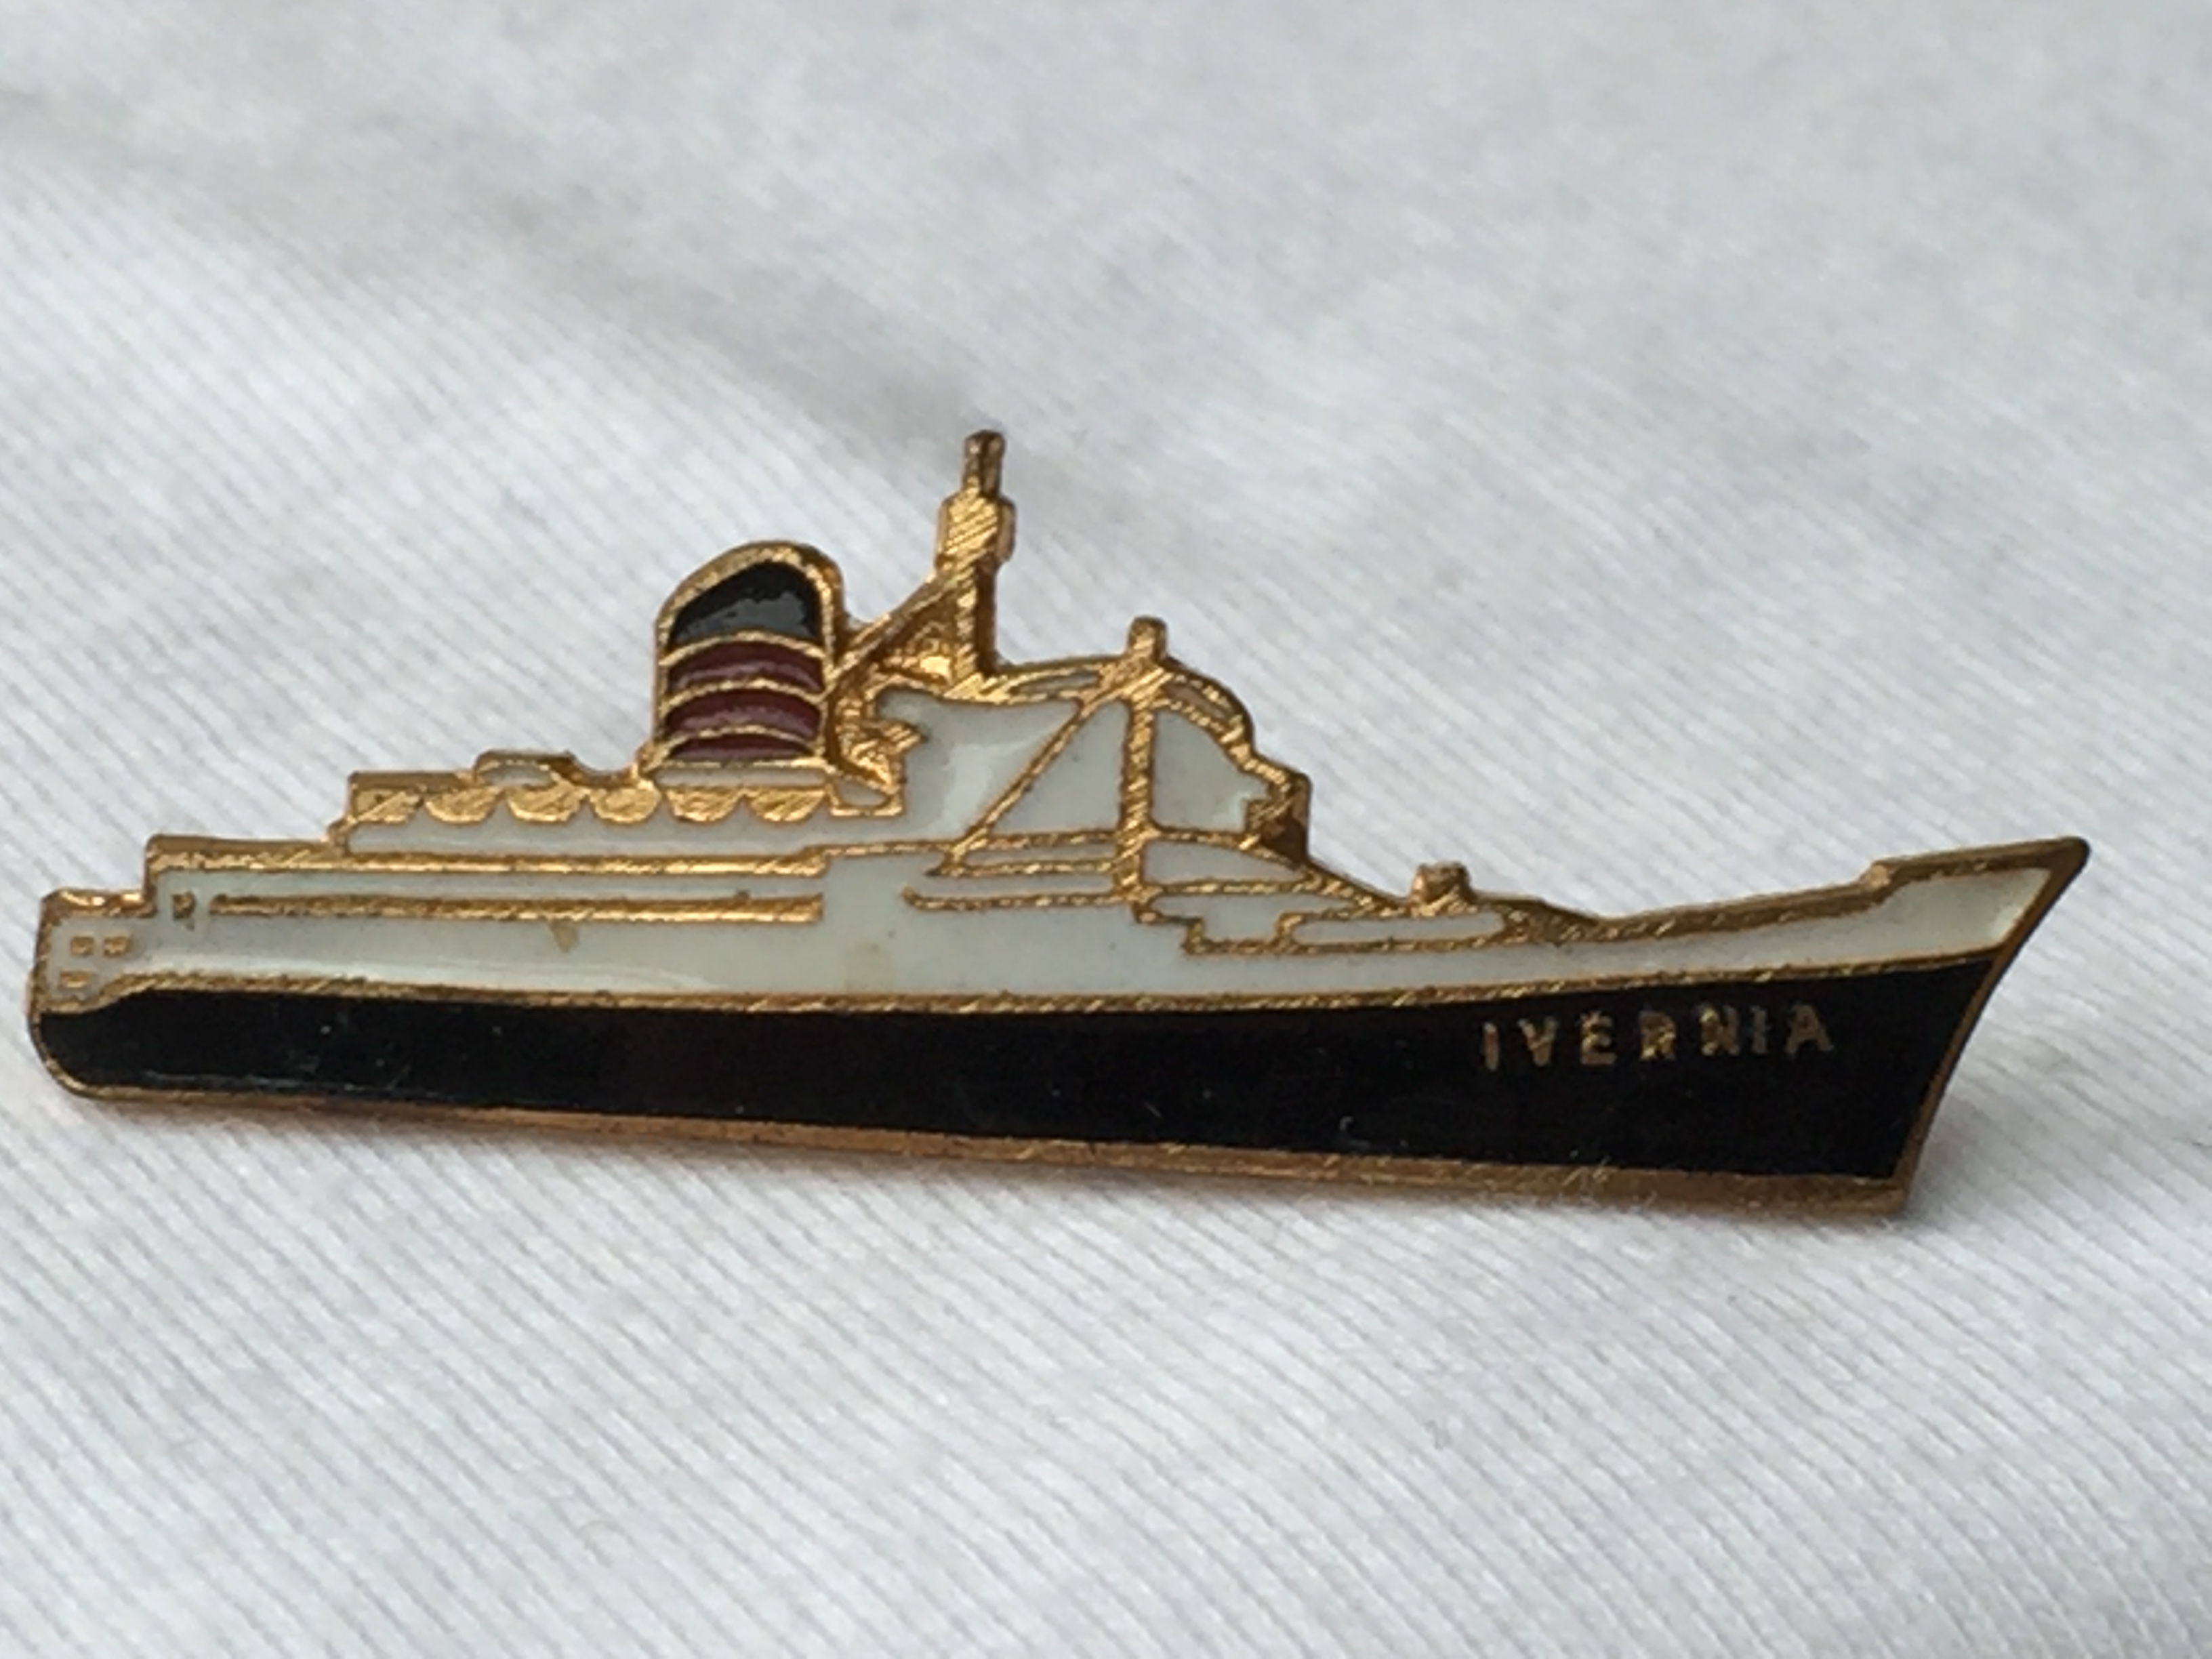 EARLY SHIP SHAPE LAPEL PIN FROM THE CUNARD LINE VESSEL THE RMS IVERNIA